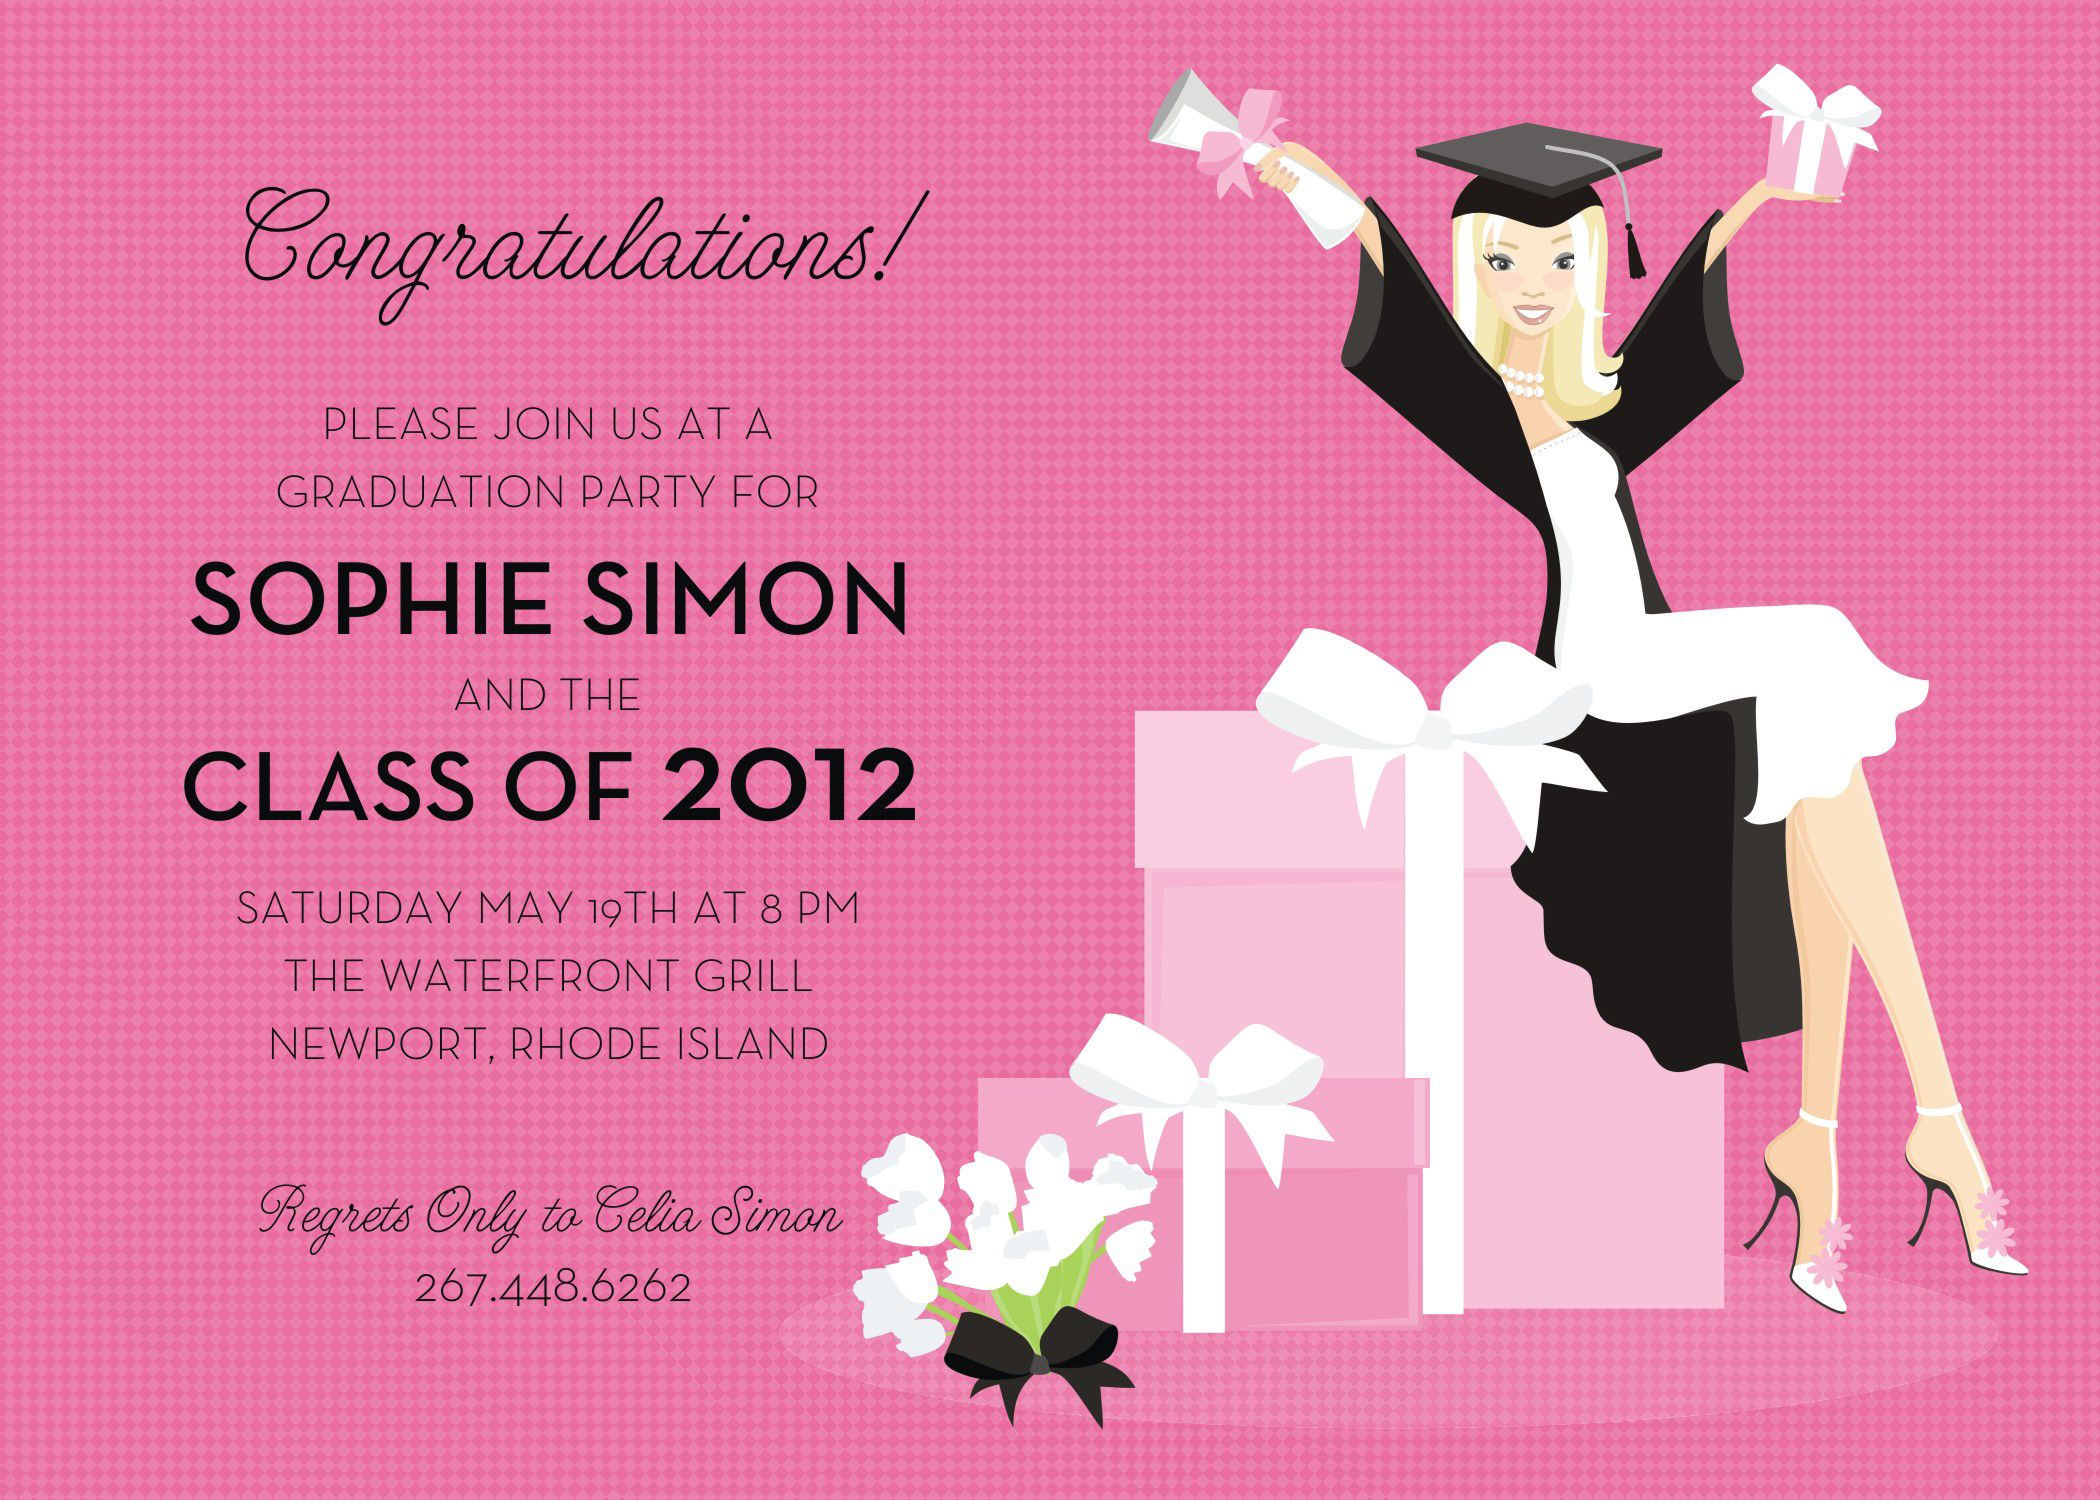 graduation party invitation wording | graduation party invitation, Party invitations